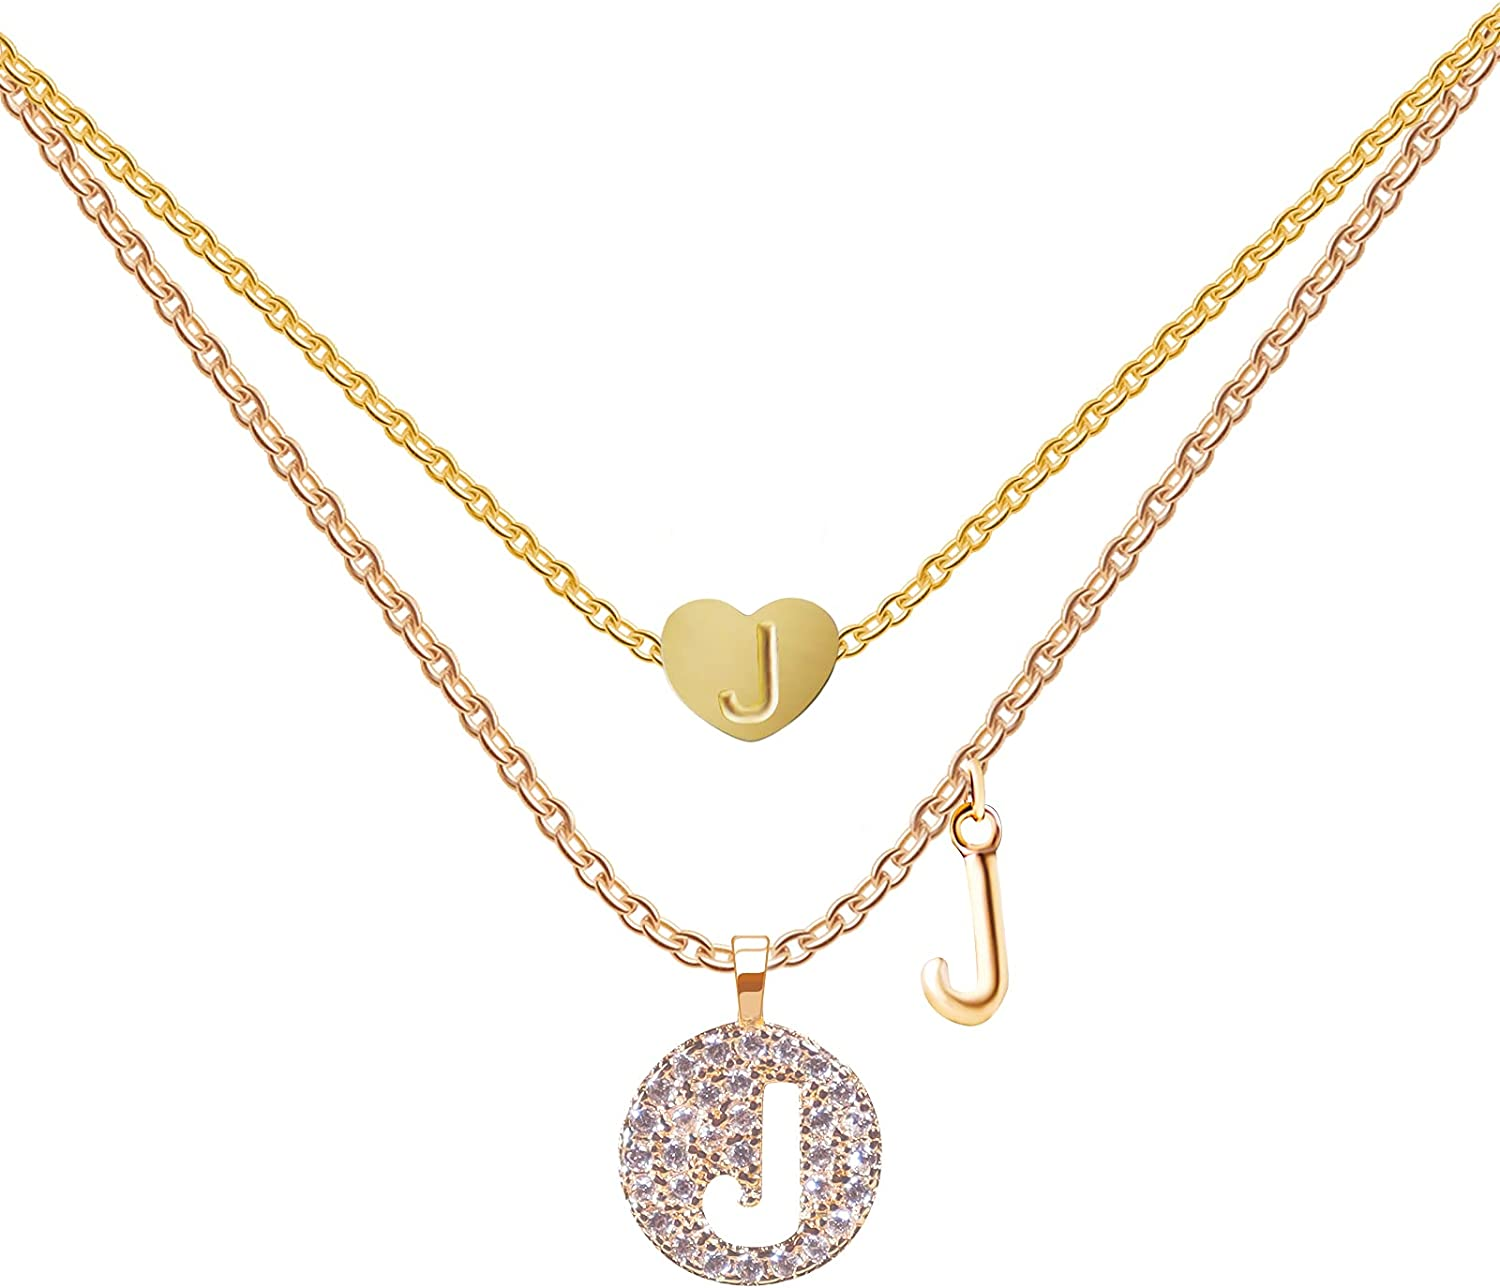 Tiny Gold Initial Heart Necklaces For Girls(2 Styles/Set) ,14k Gold/ Rose Gold Filled Heart Pendant Handmade Dainty Heart/Hollow Of The Initial Letter Necklaces For Teen Girls Kids Jewelry Gifts (Set-J): Clothing